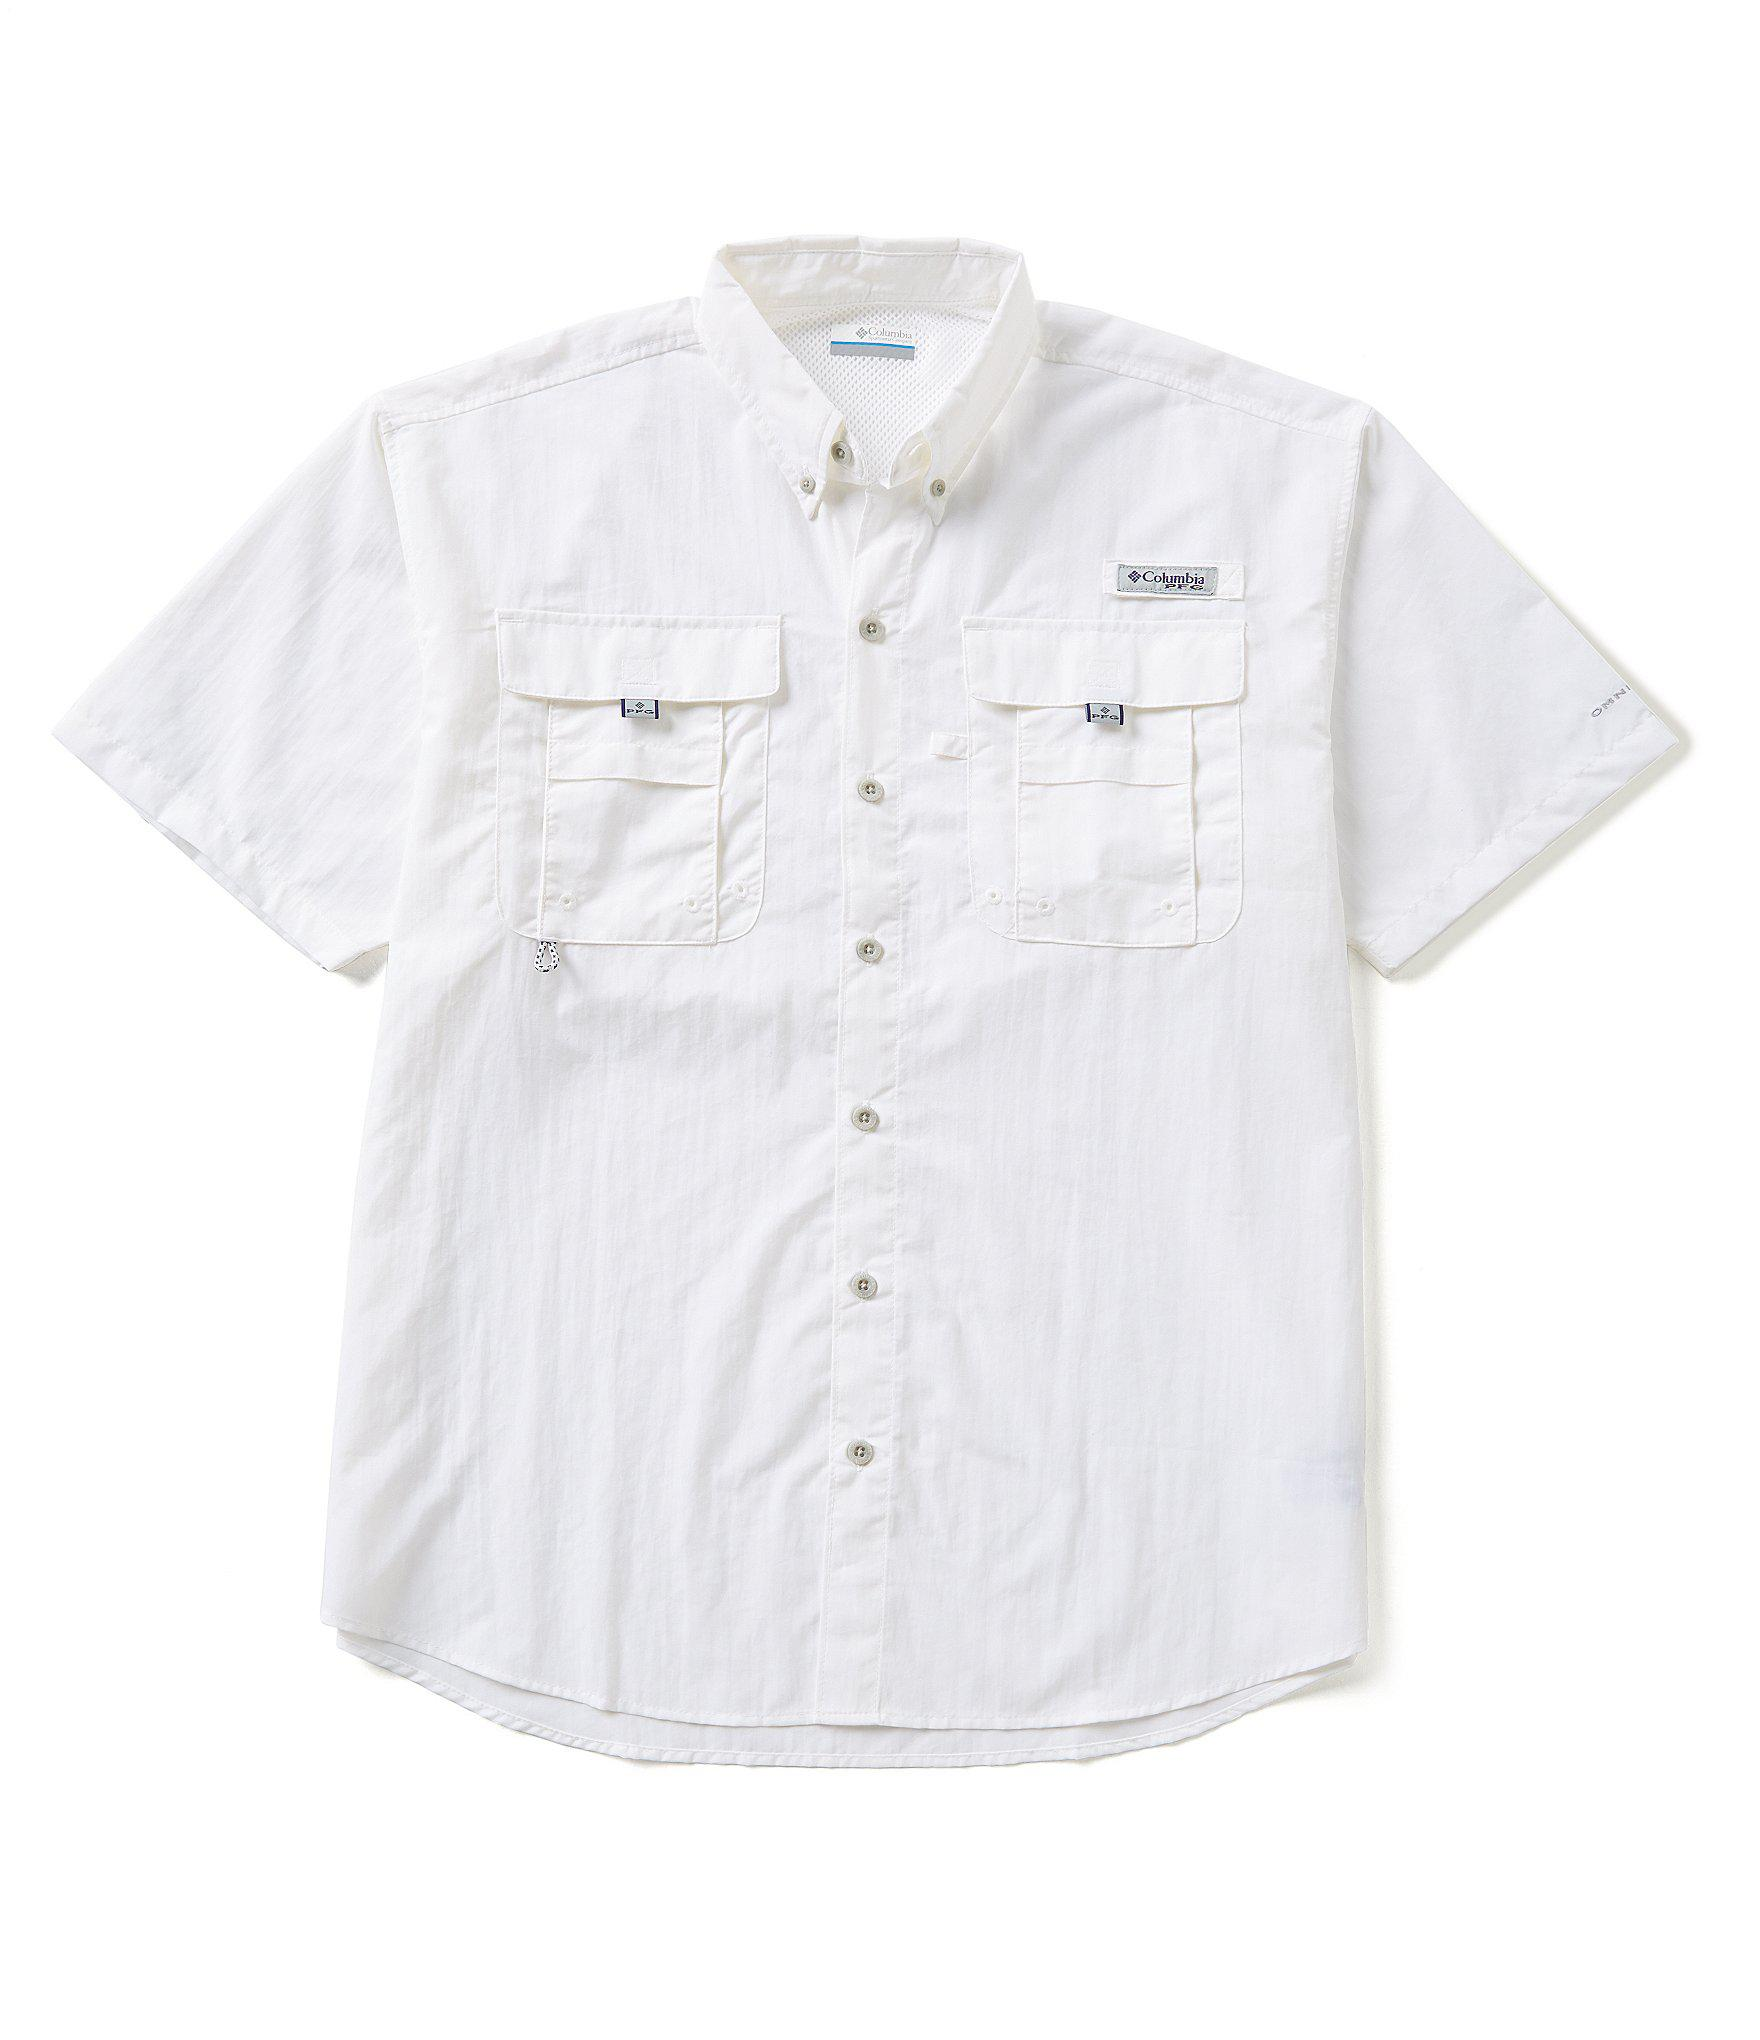 366505fb28f Lyst - Columbia Pfg Bahama Ii Solid Short-sleeve Shirt in White for Men